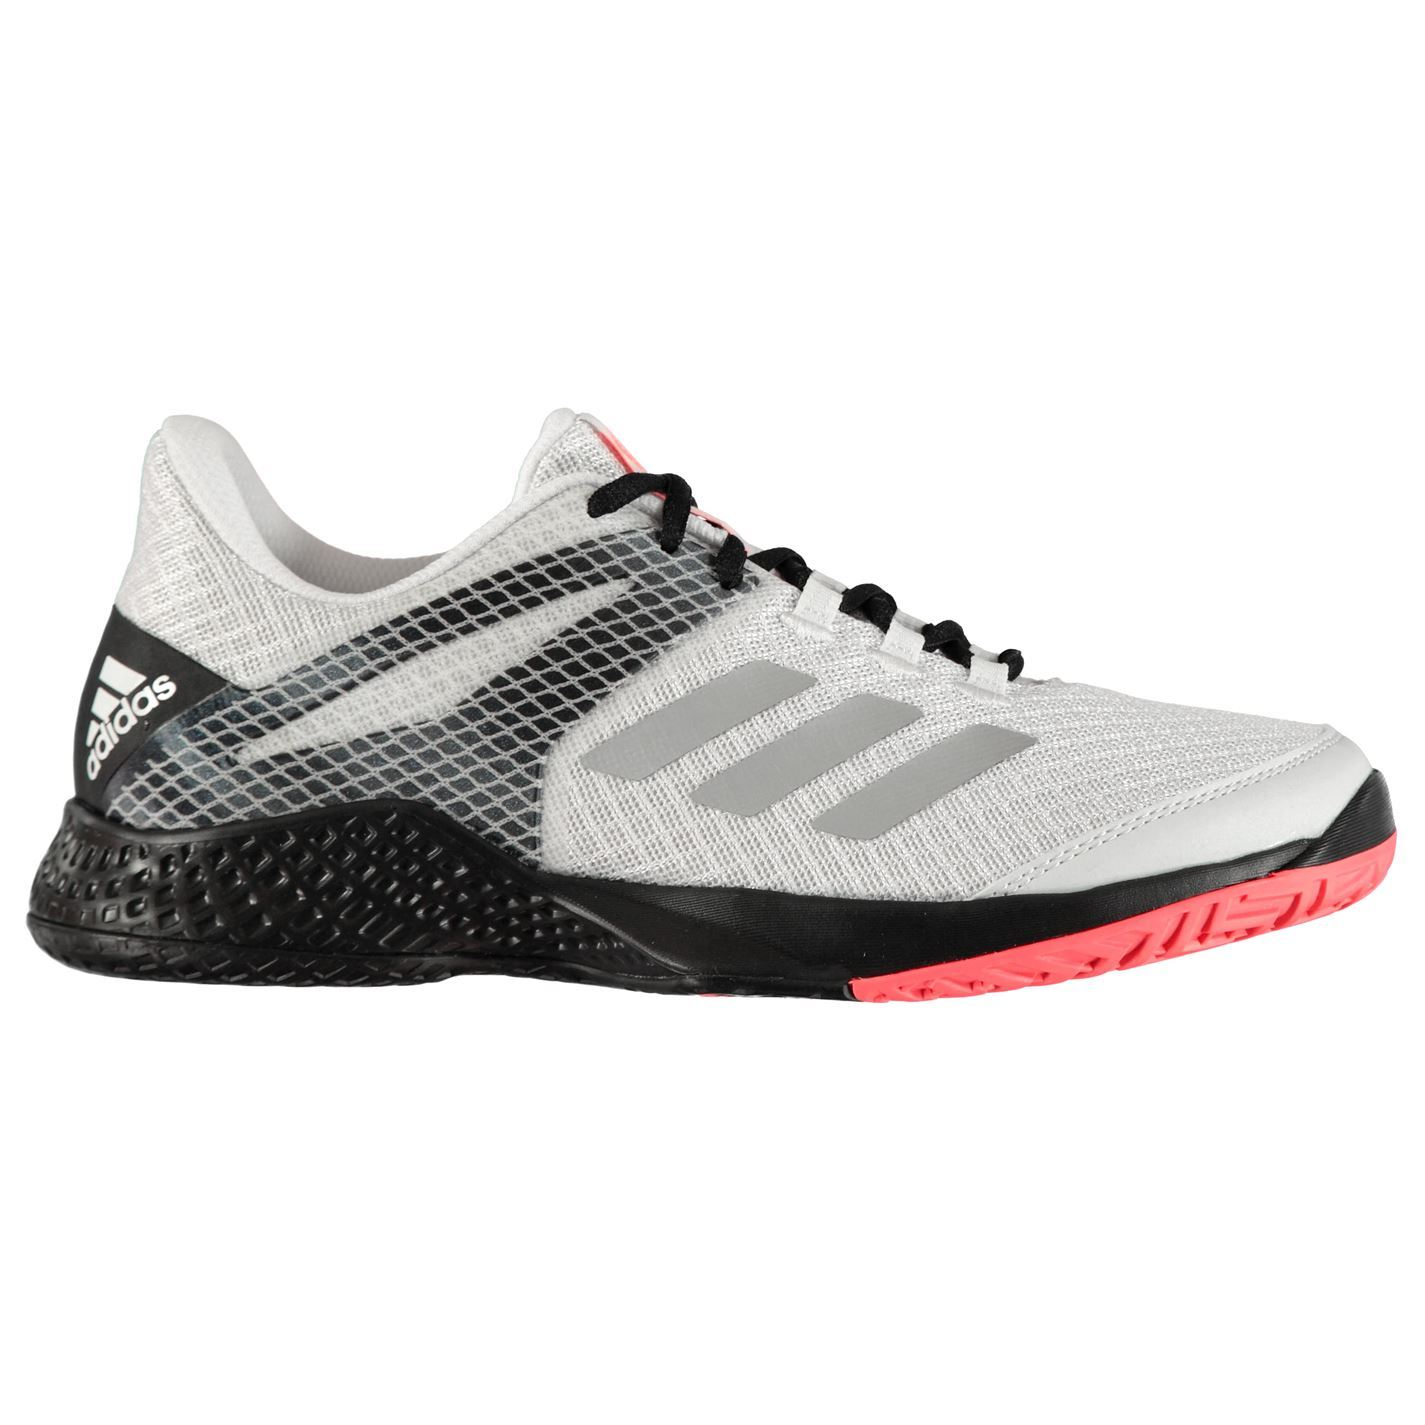 adidas adizero Club 2 Trainers Mens The adidas adizero Club 2 Trainers give  you the upper crust of on-court play 91d504f9c98a